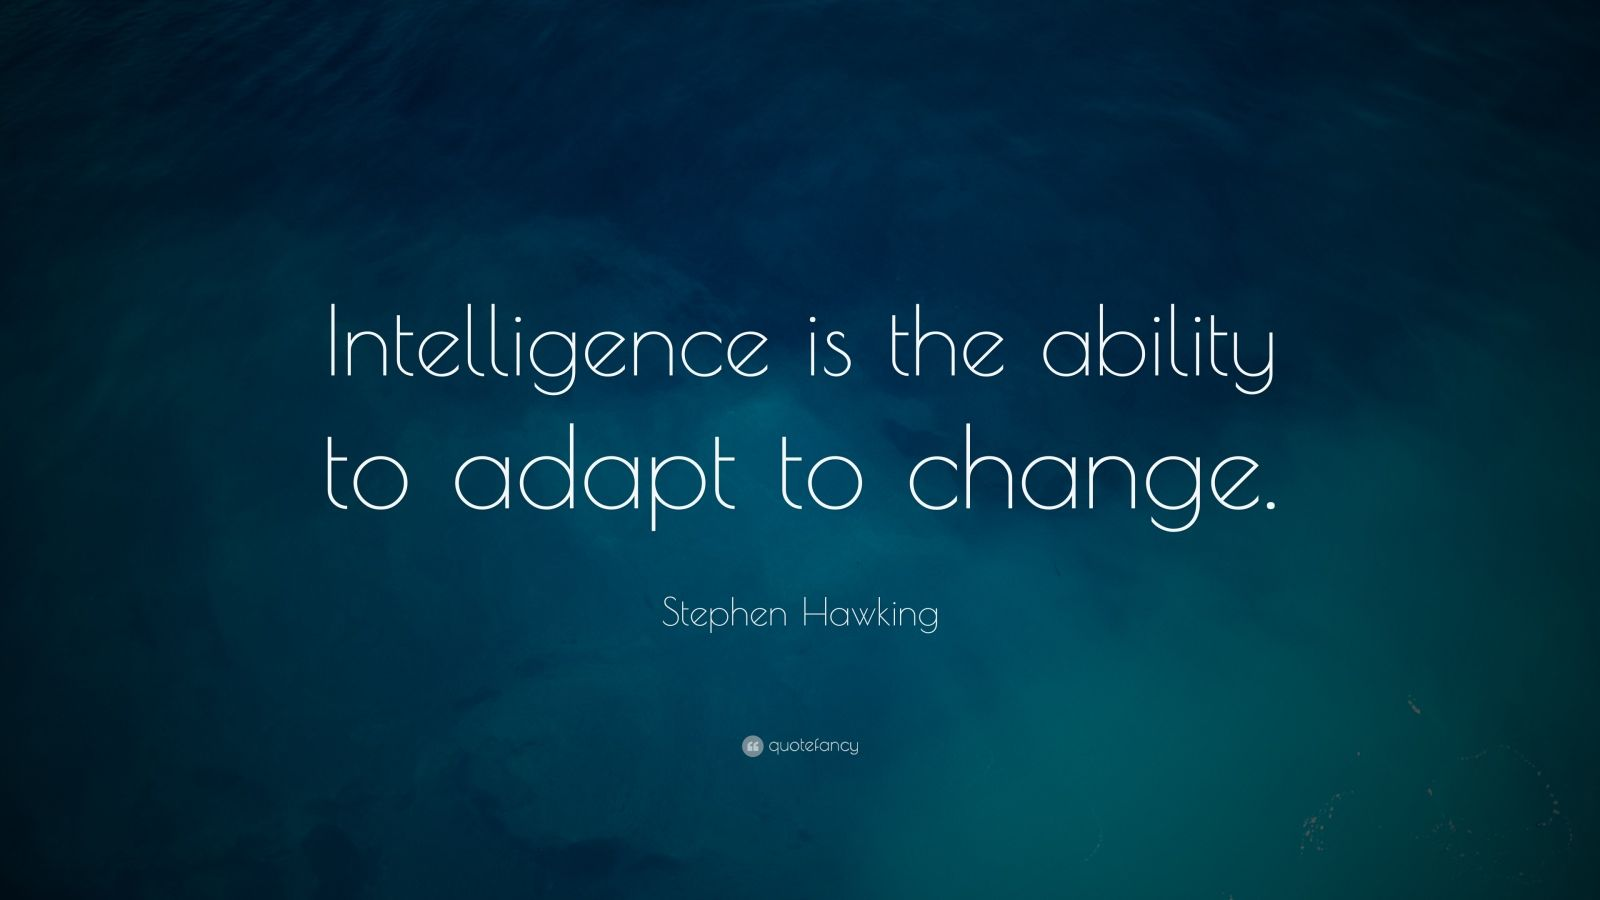 Stephen Hawking Is the Ability to Adapt to Change Intelligence